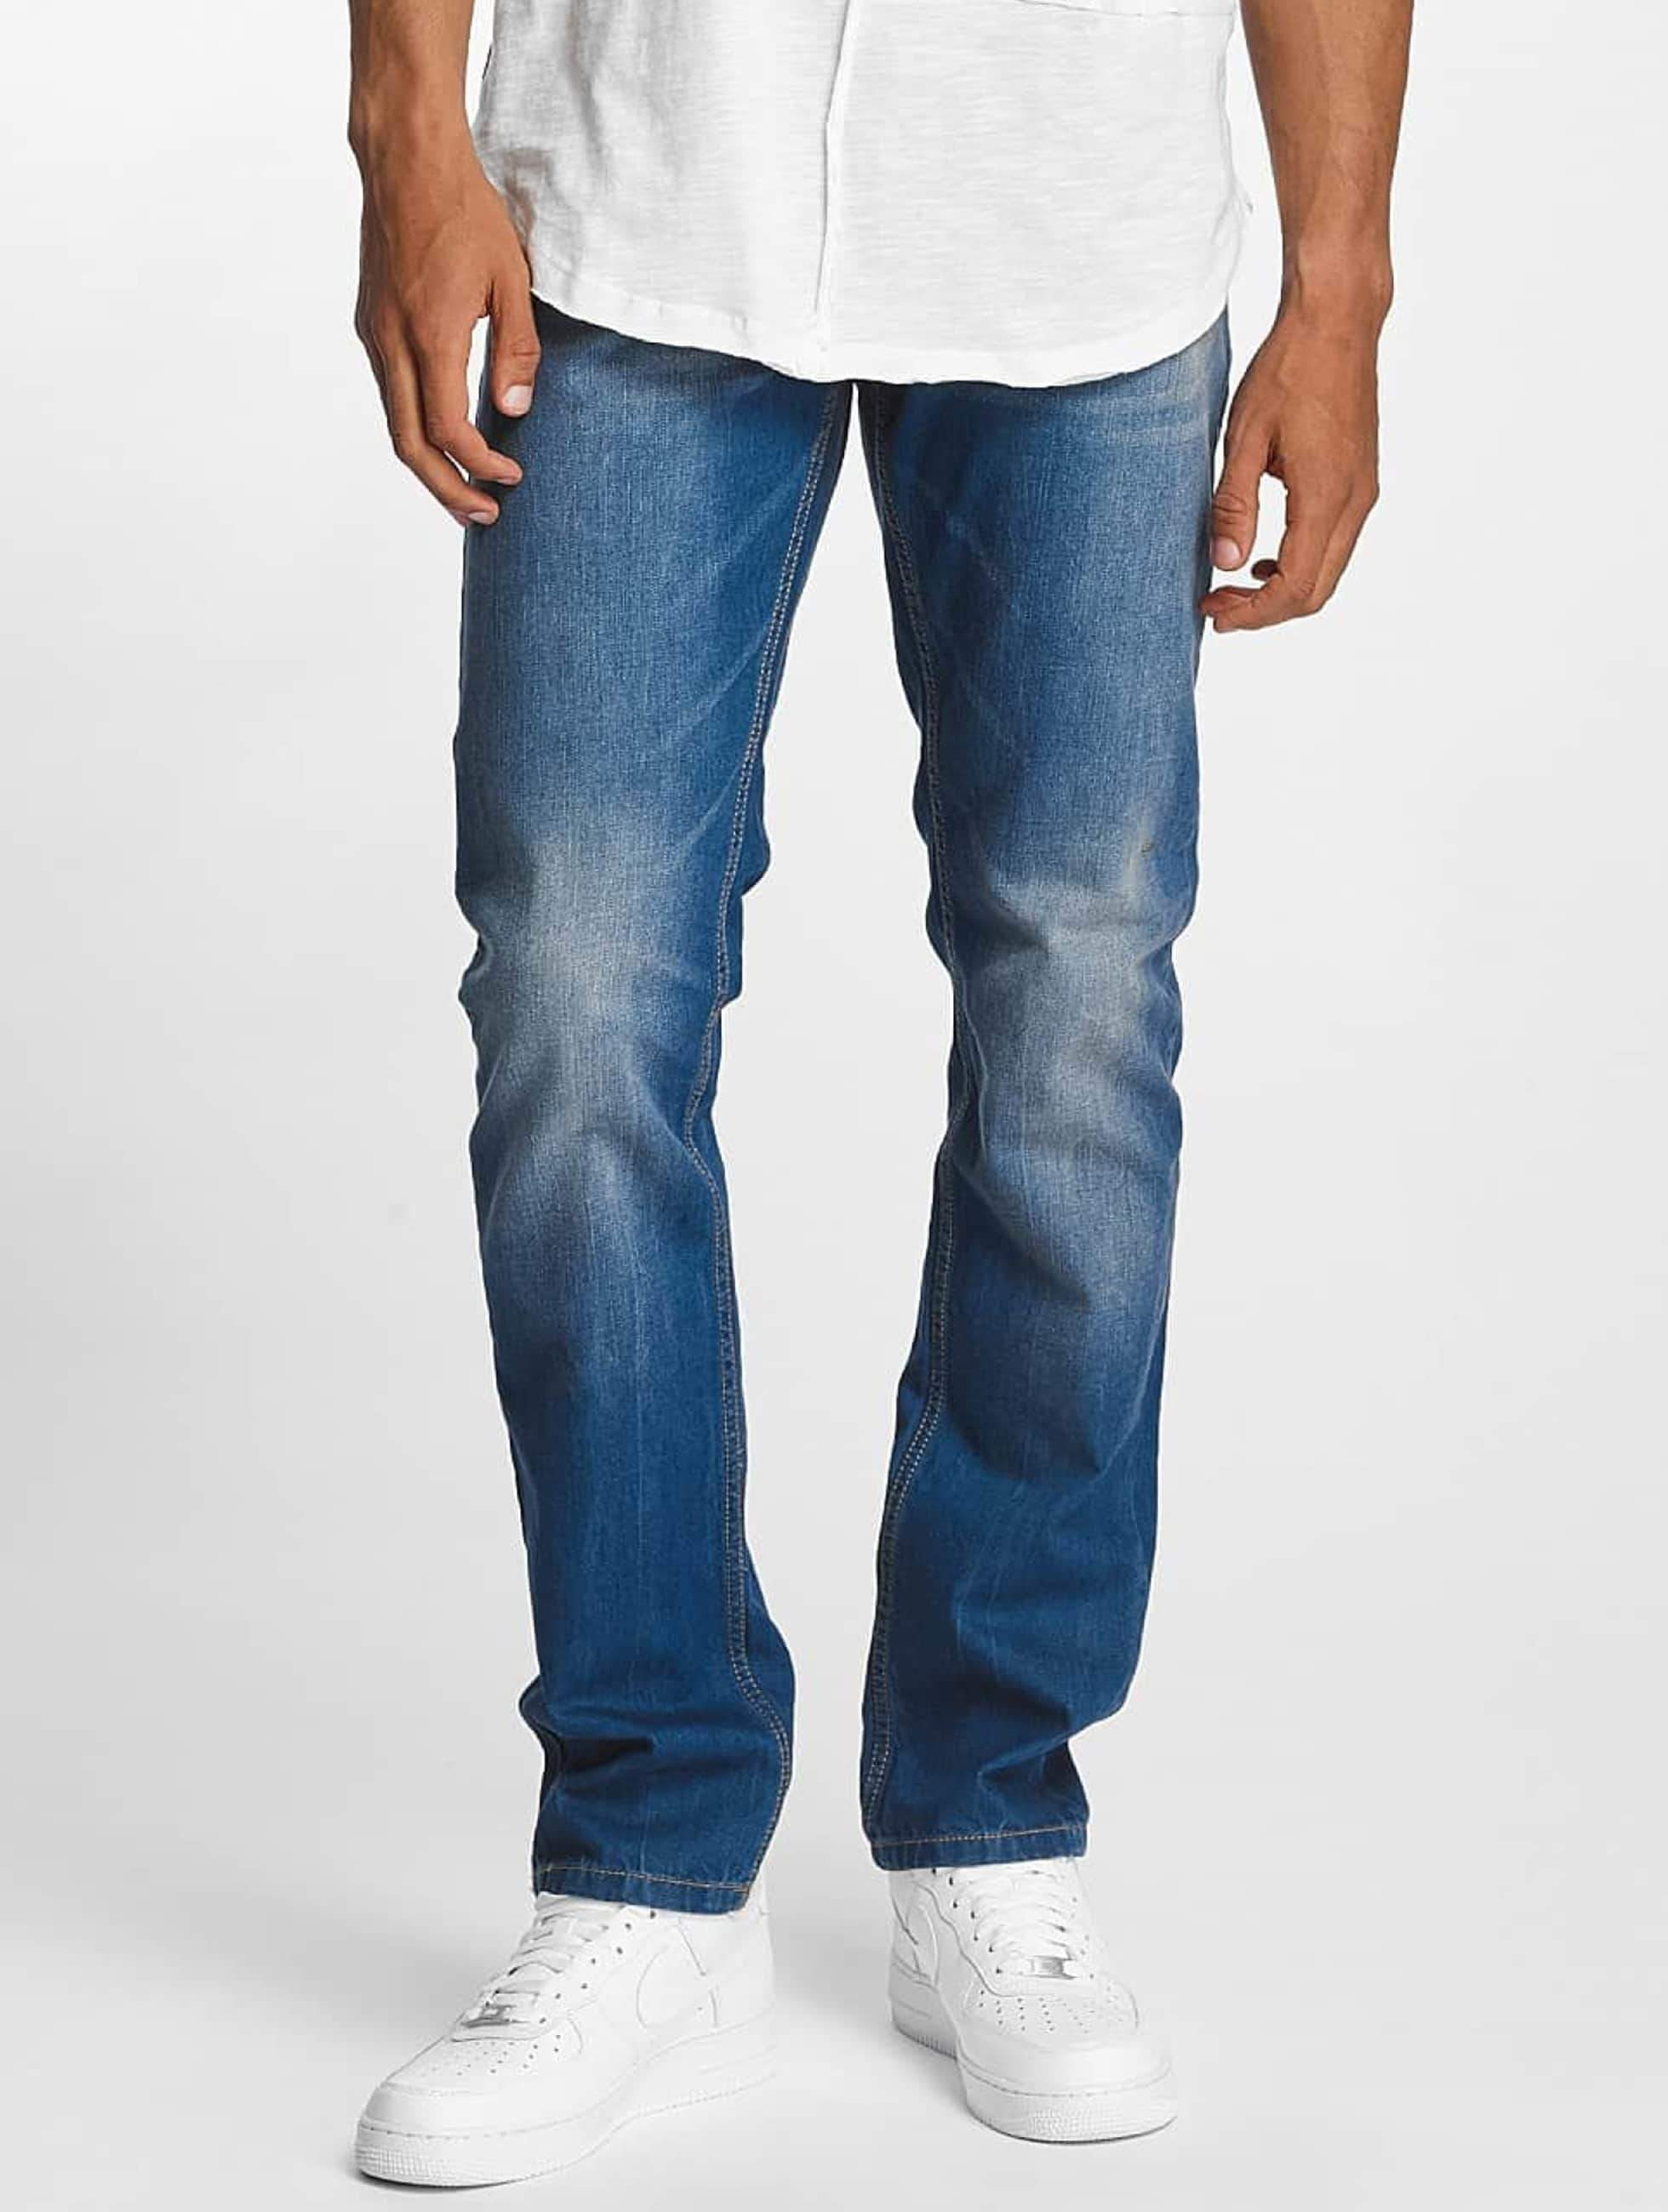 Rocawear / Straight Fit Jeans Relax in blue W 36